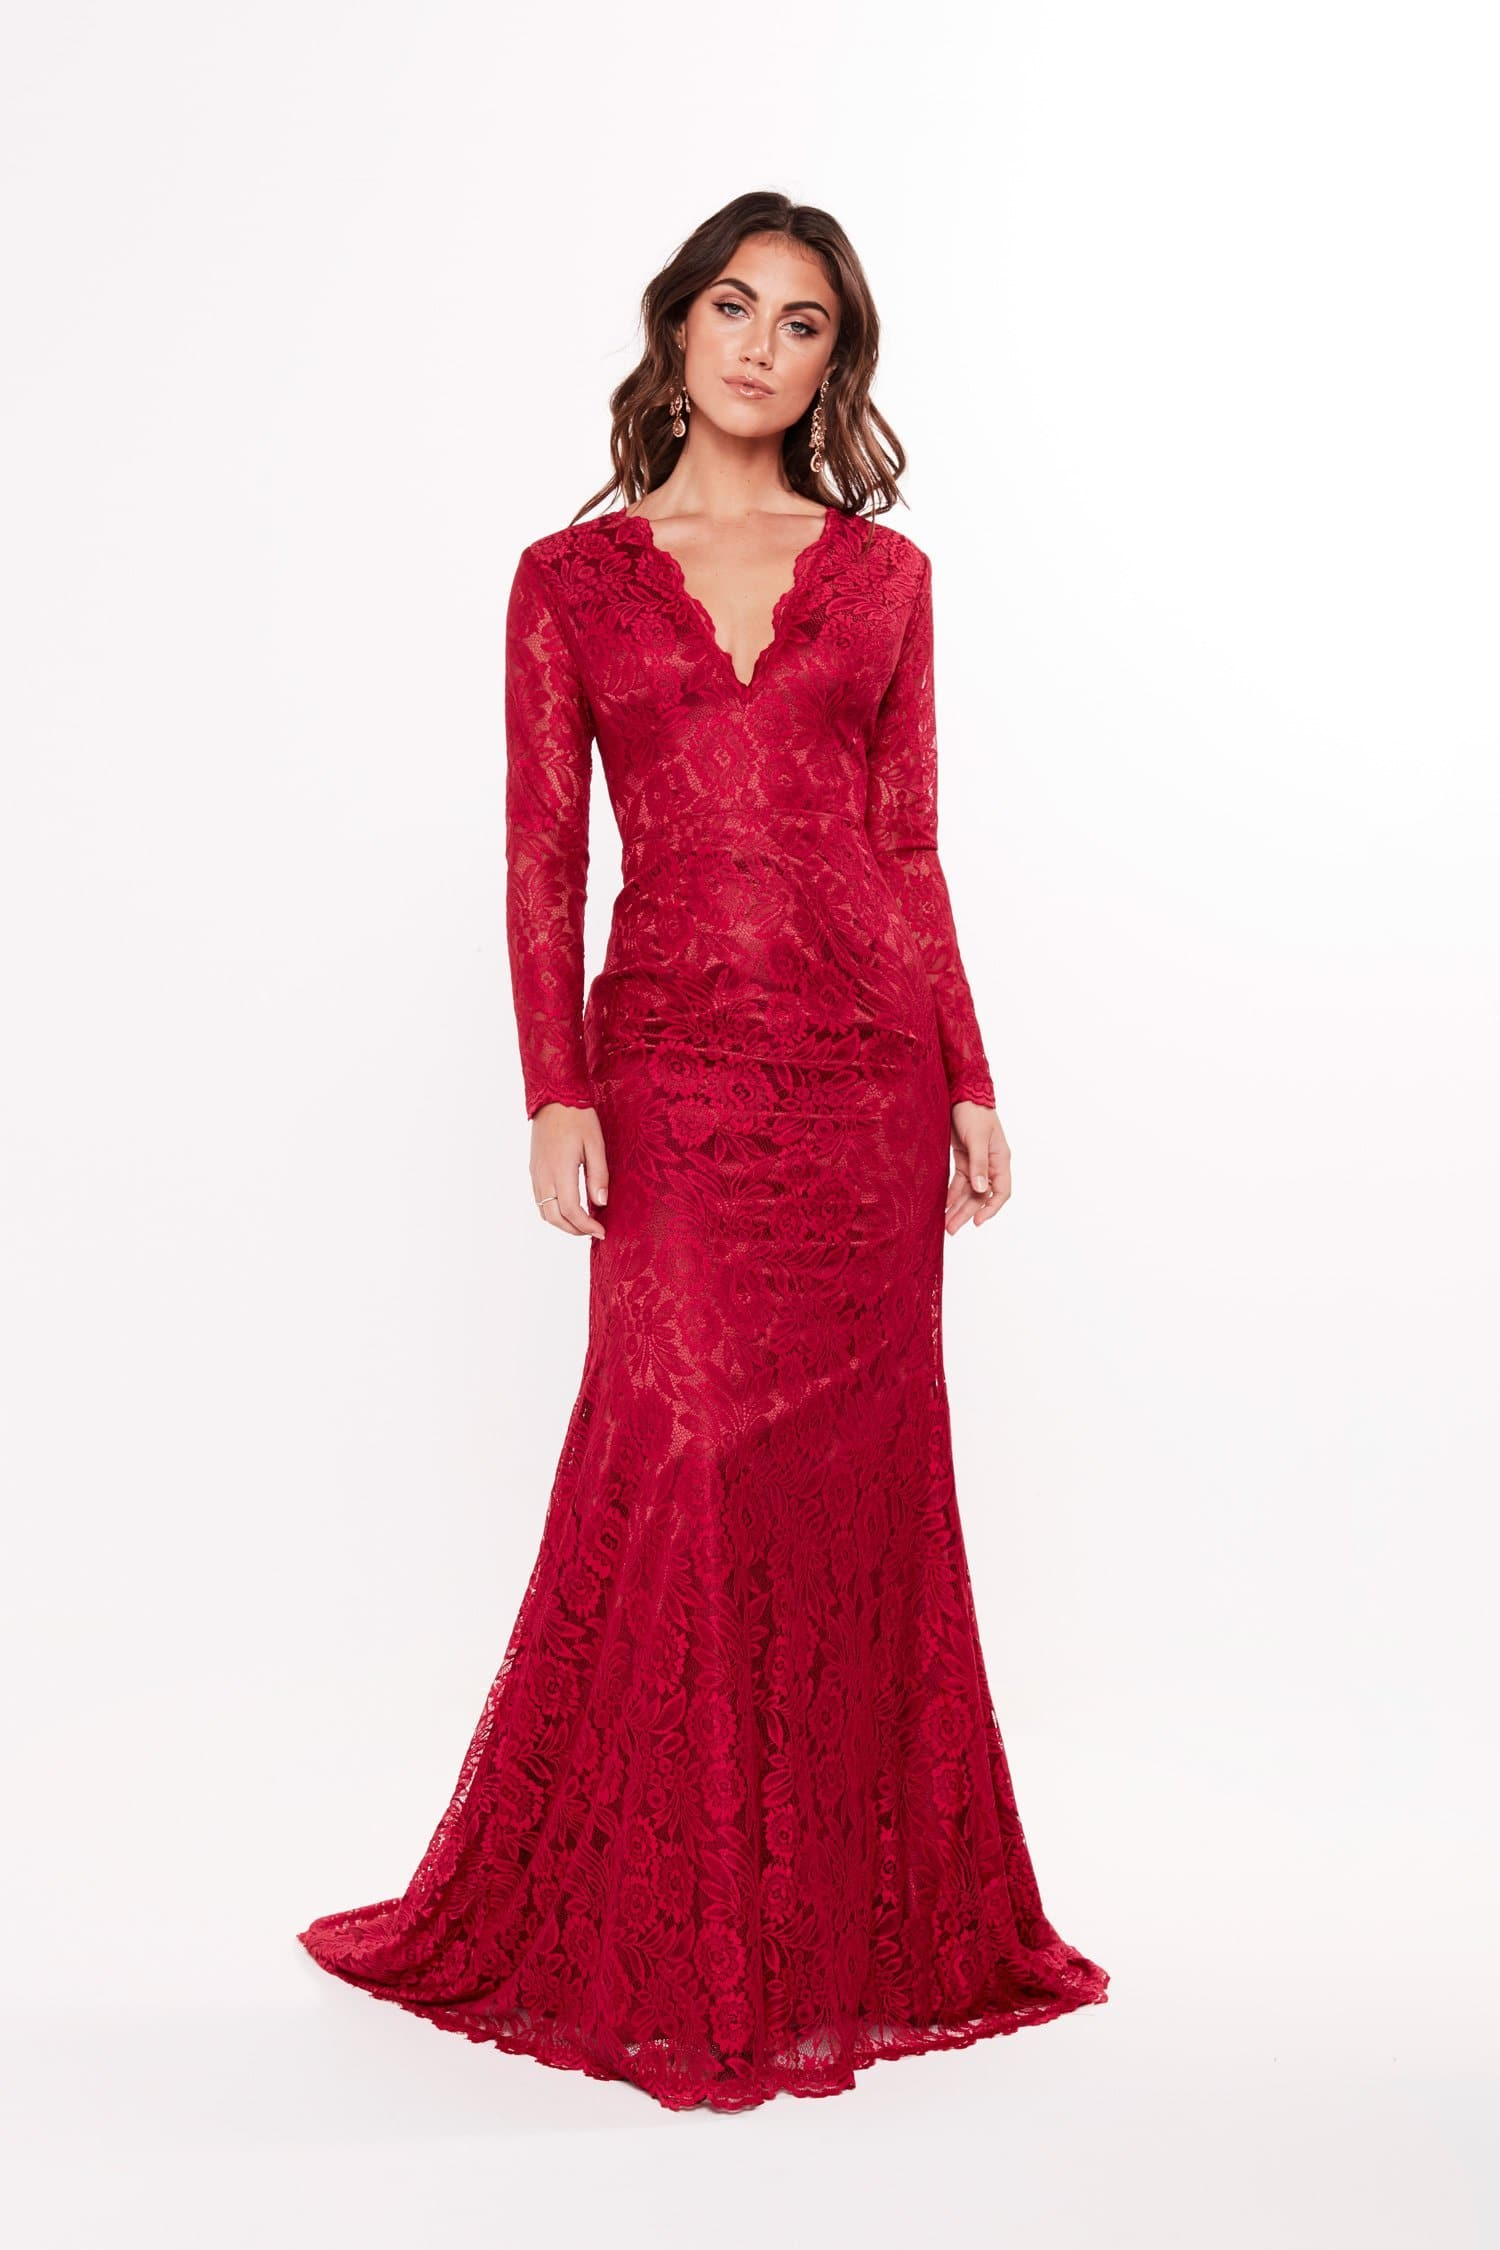 A&N Maggie - Red Long Sleeve Lace Gown with V Neckline